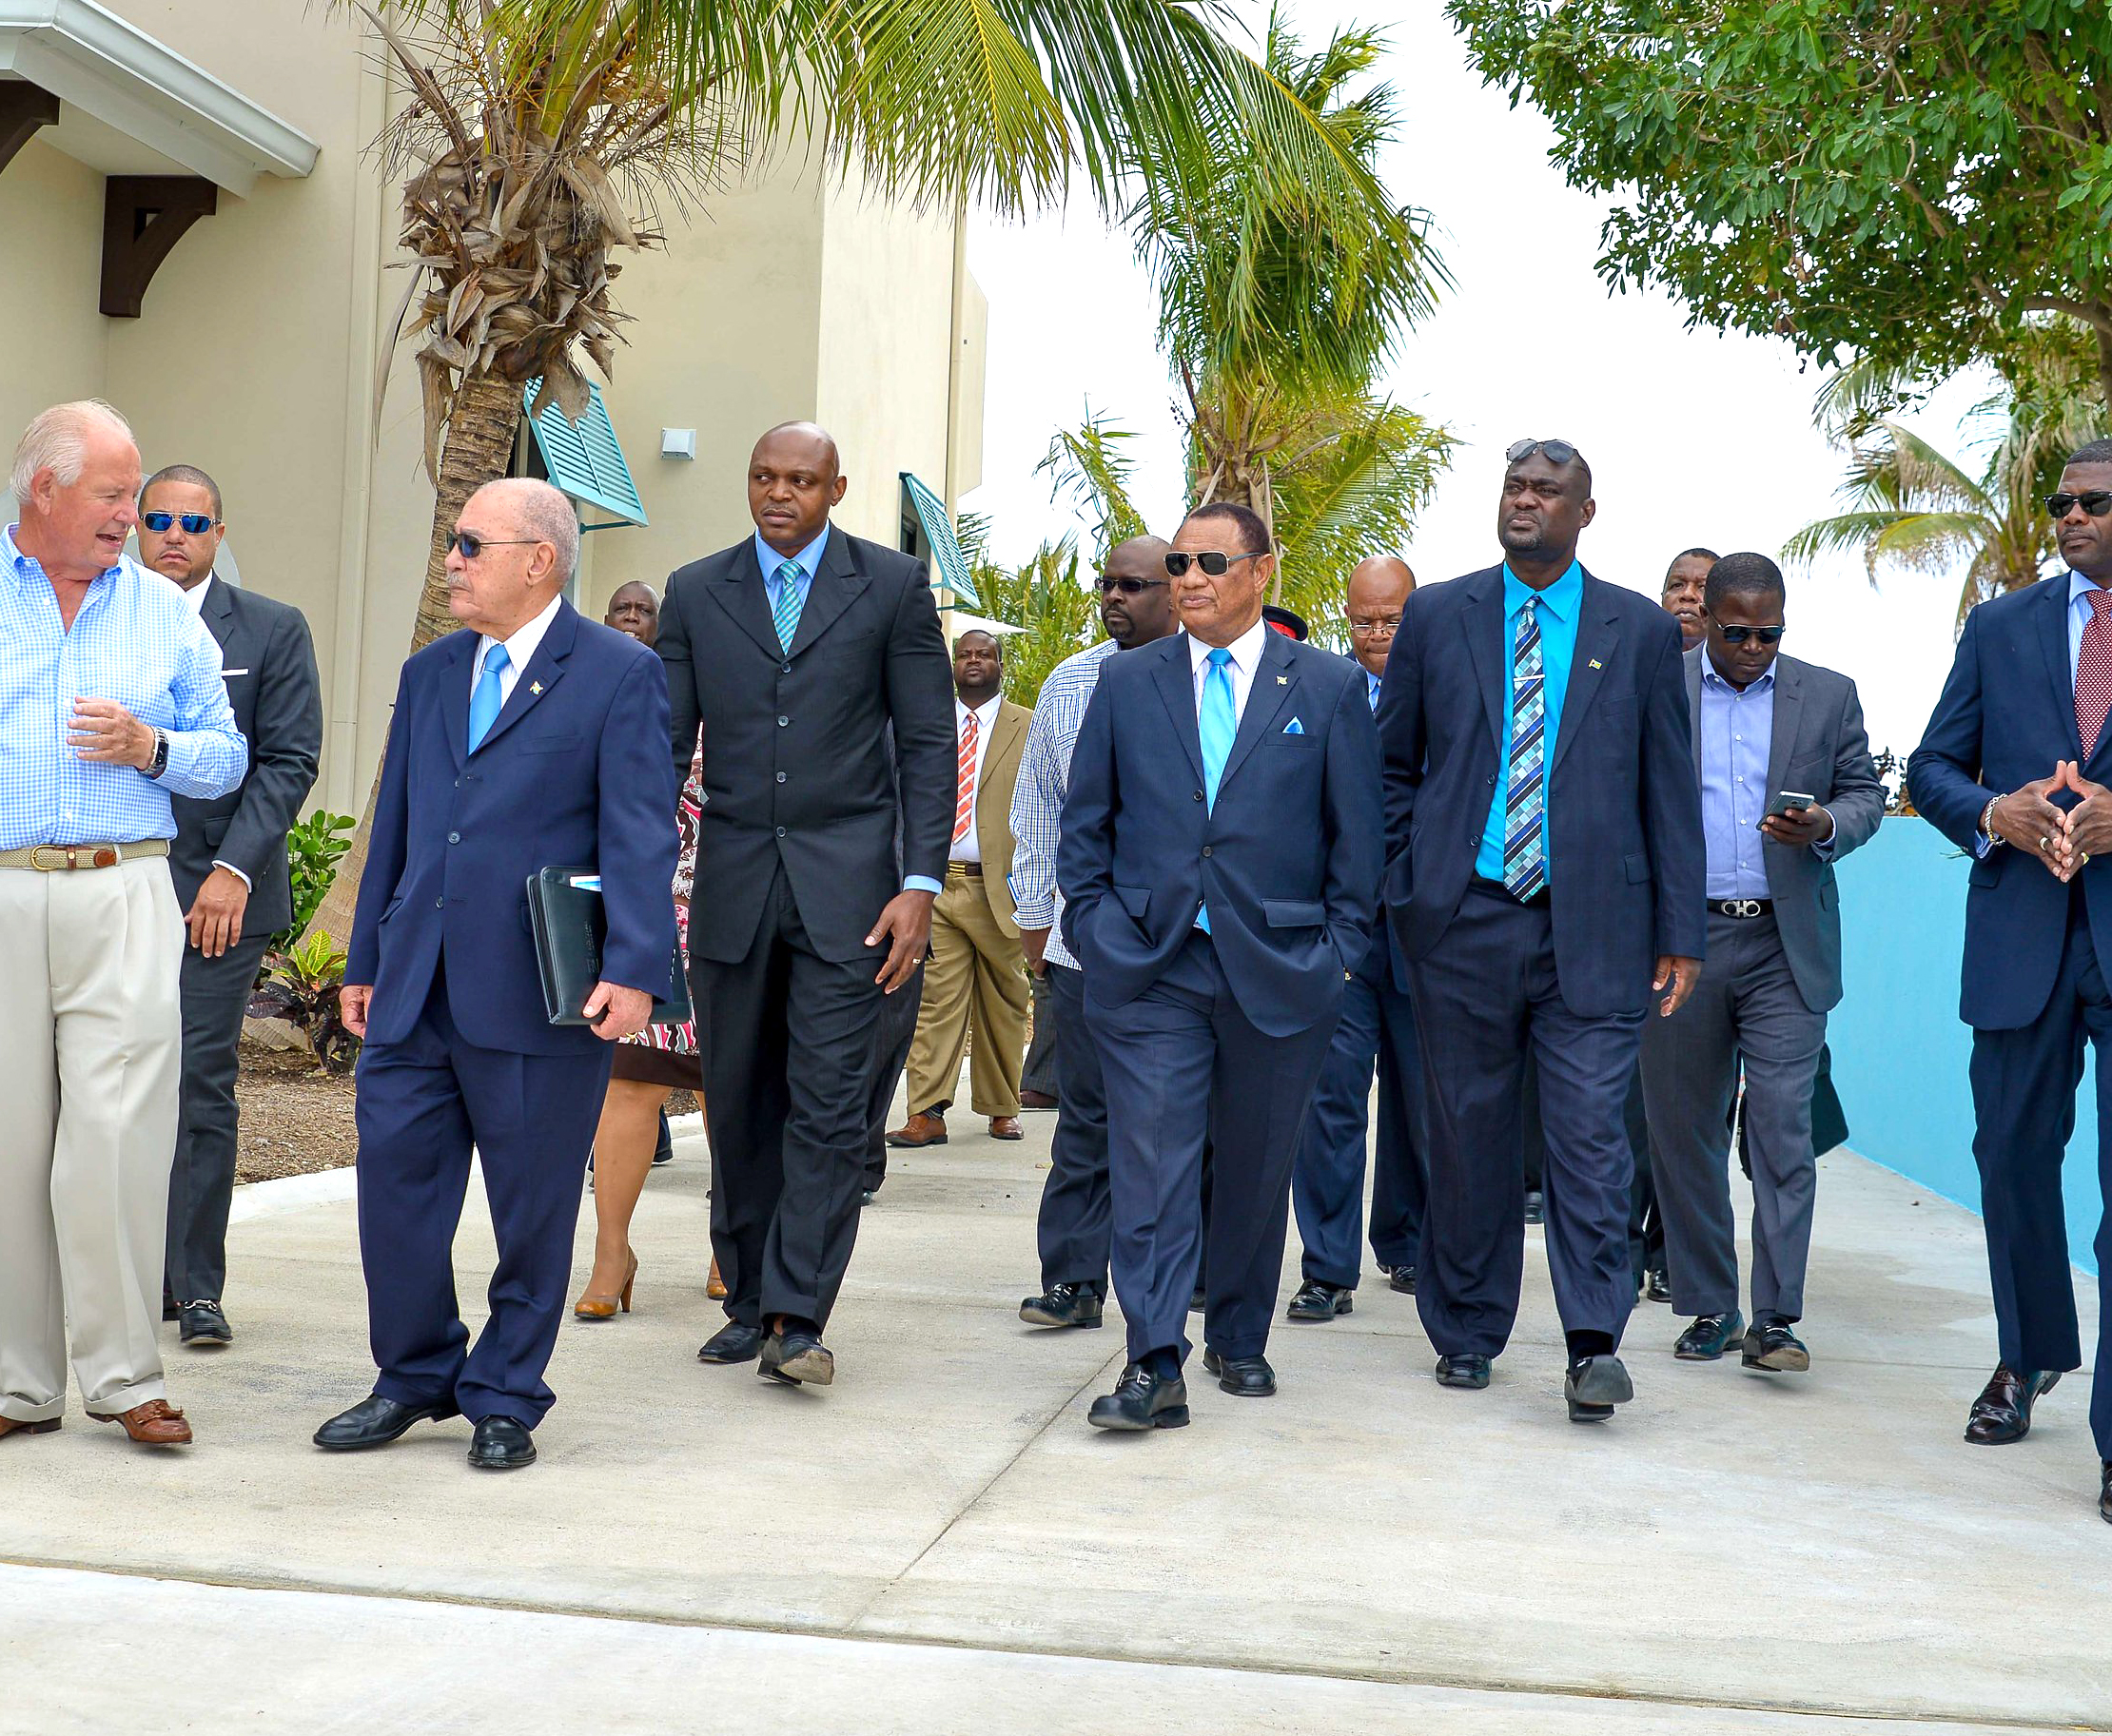 Exuma Celebrates Milestone at February Point FebruaryPoint